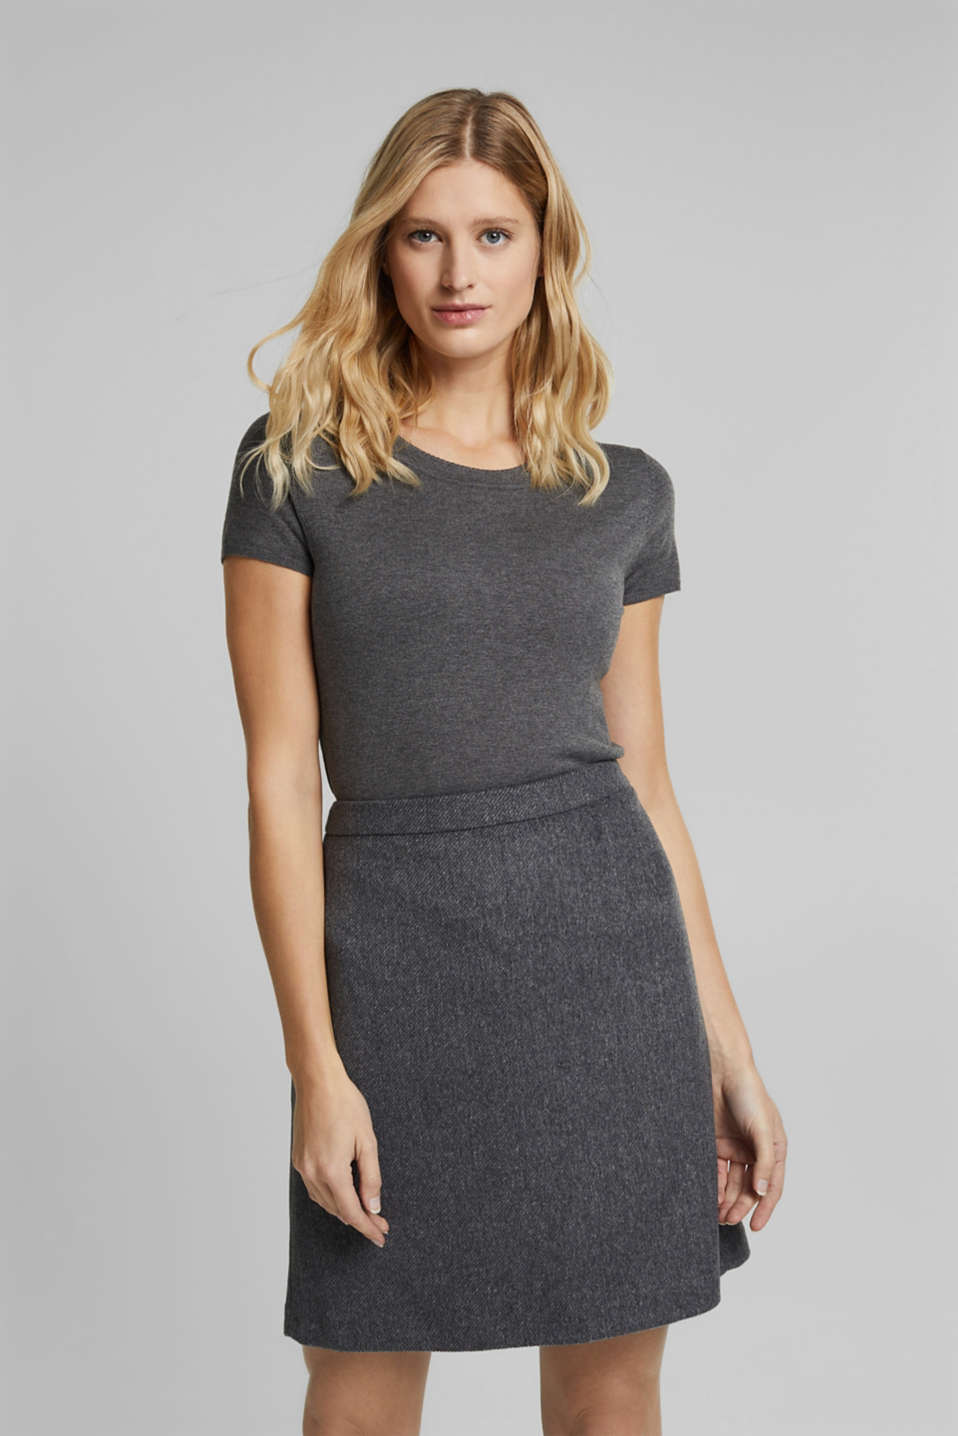 Esprit - With wool: skirt in a melange finish